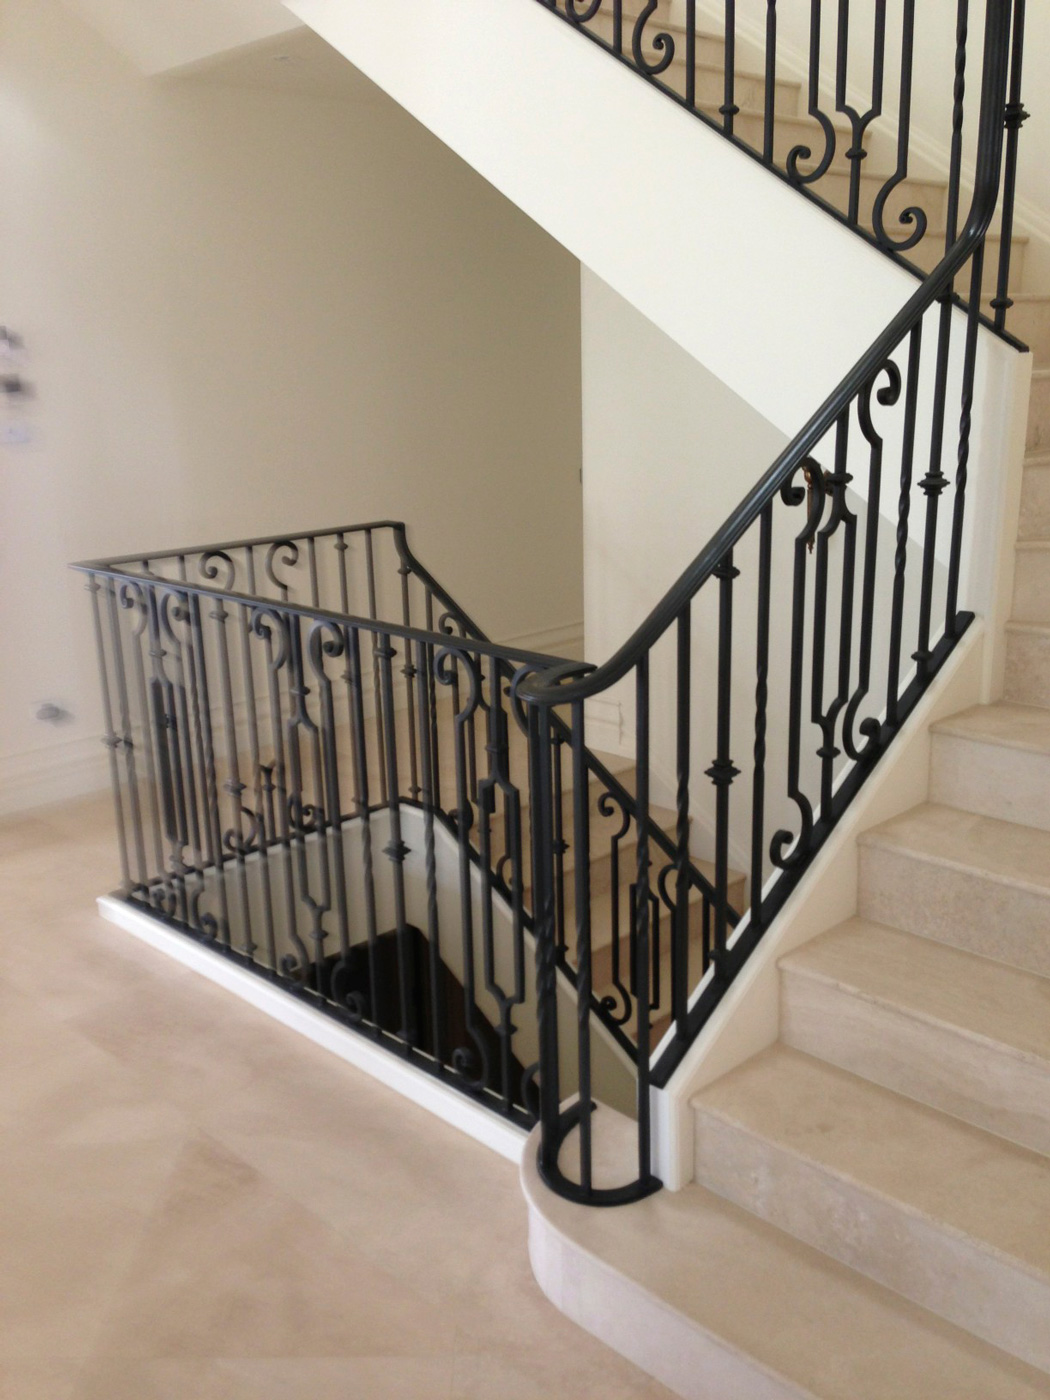 Balustrade Tangga Hiba Design And Construction Wrought Iron Balustrades